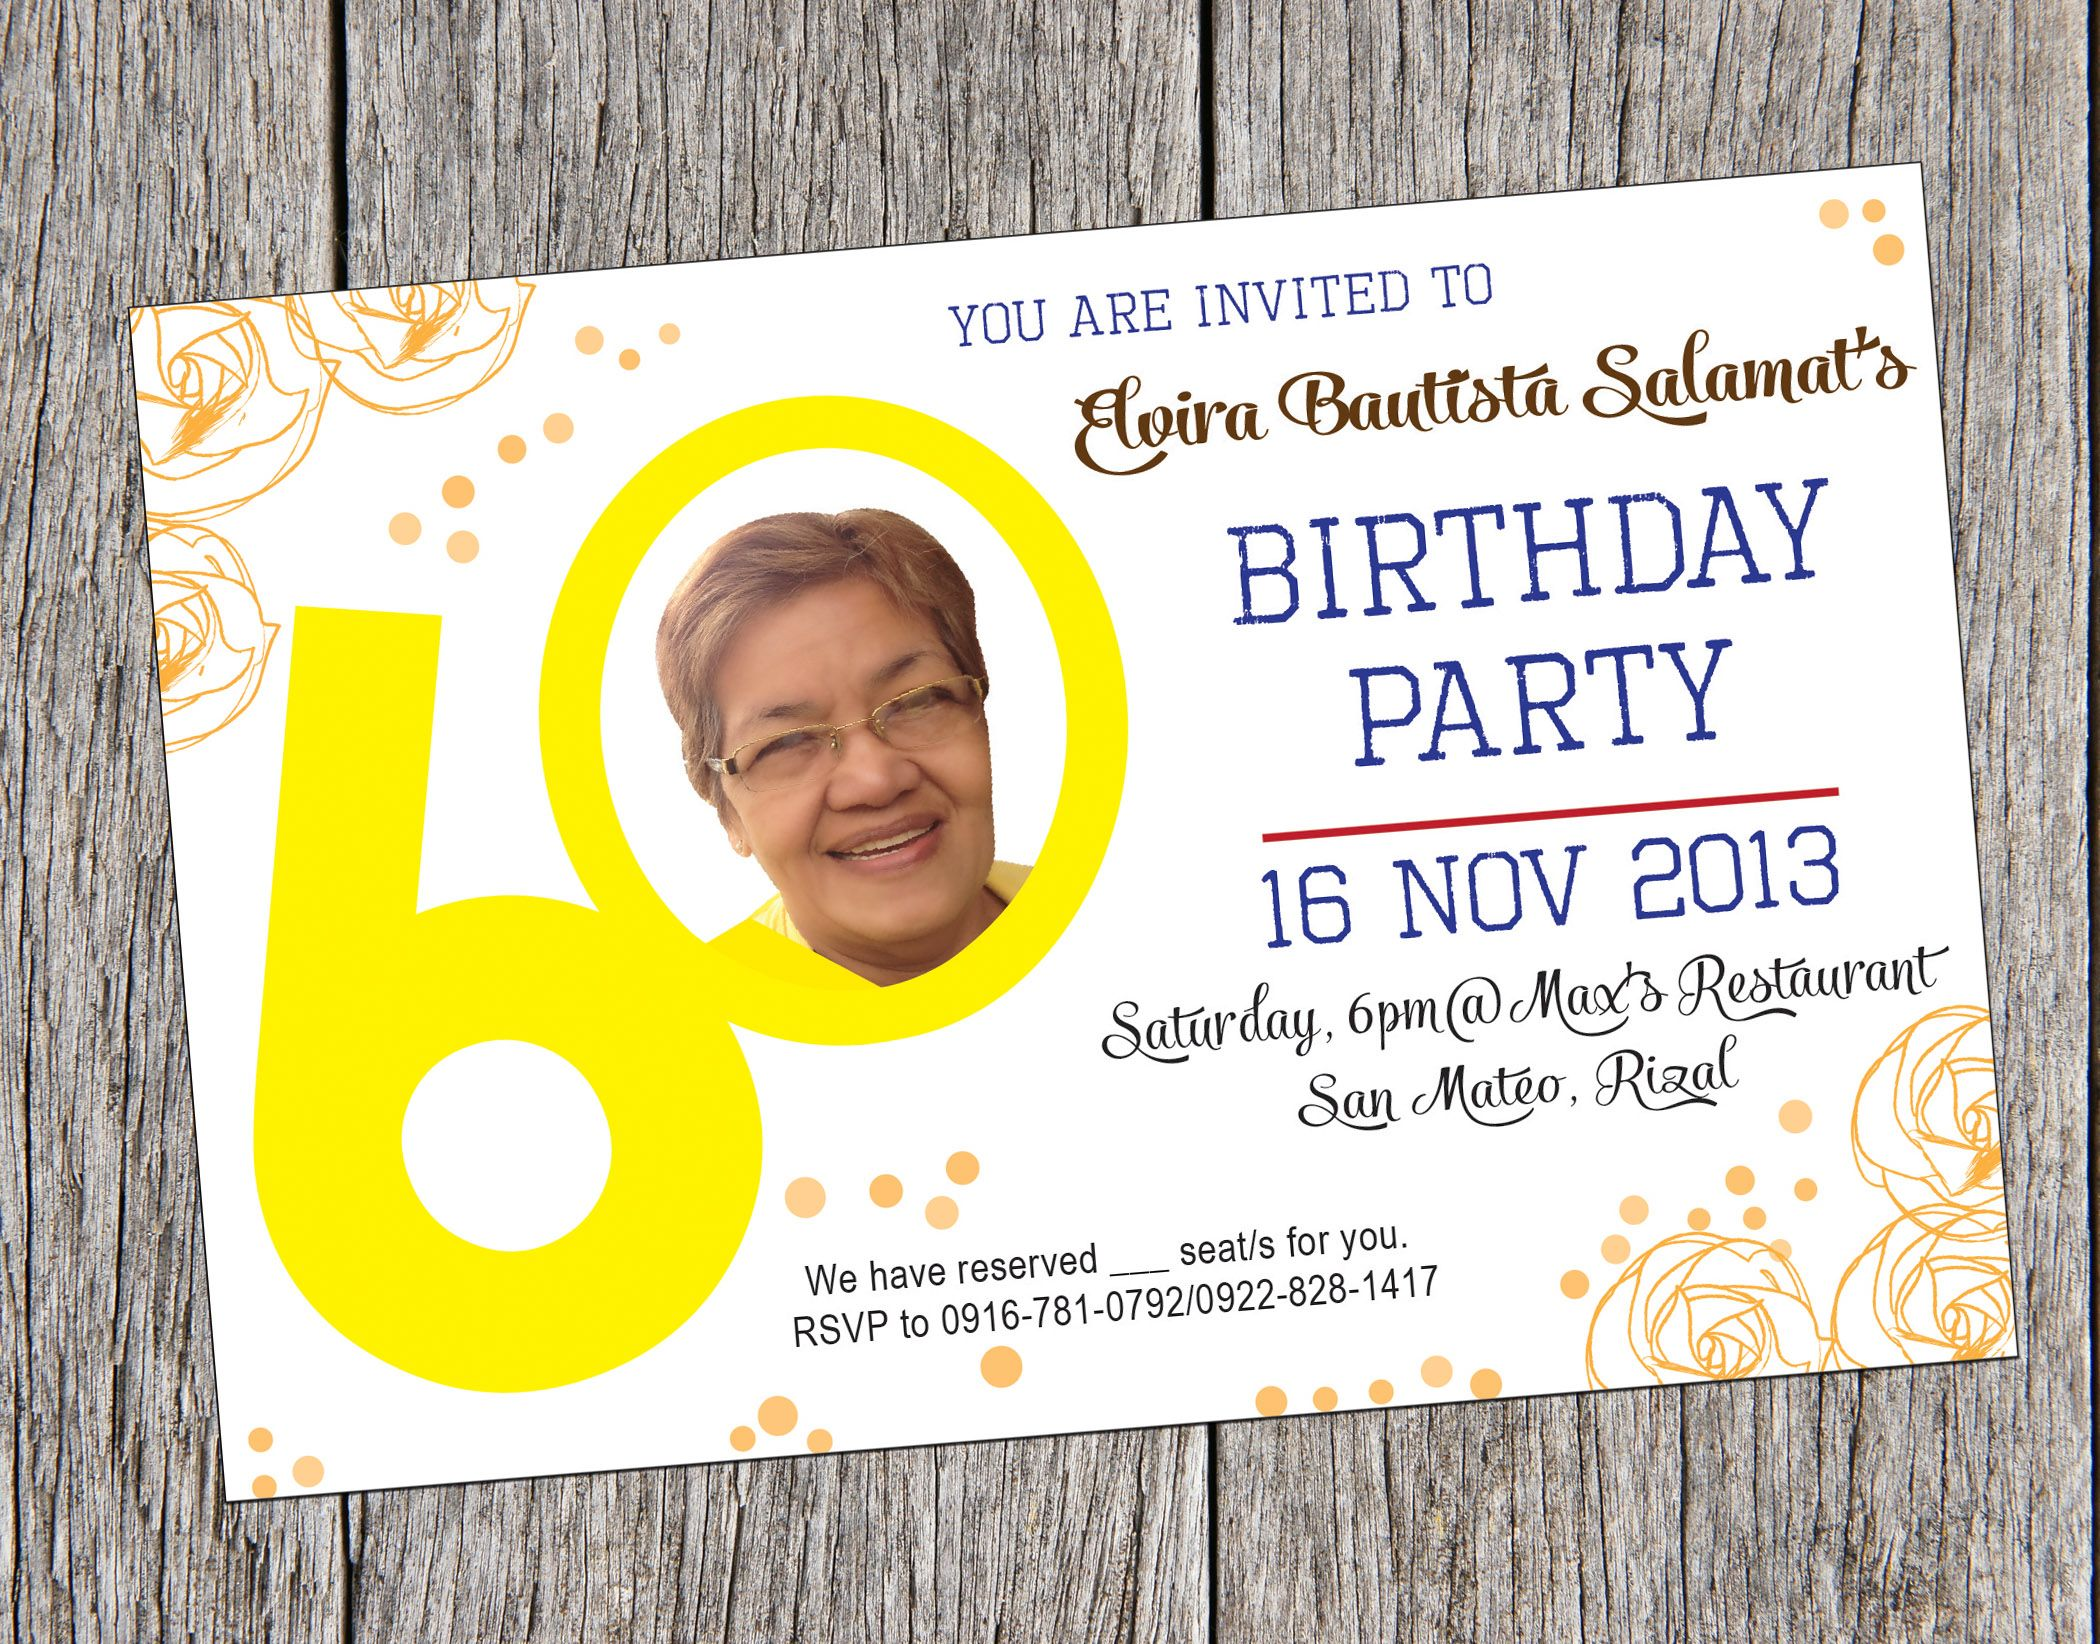 Invitation card for 60th Birthday. I made this invitation card for ...